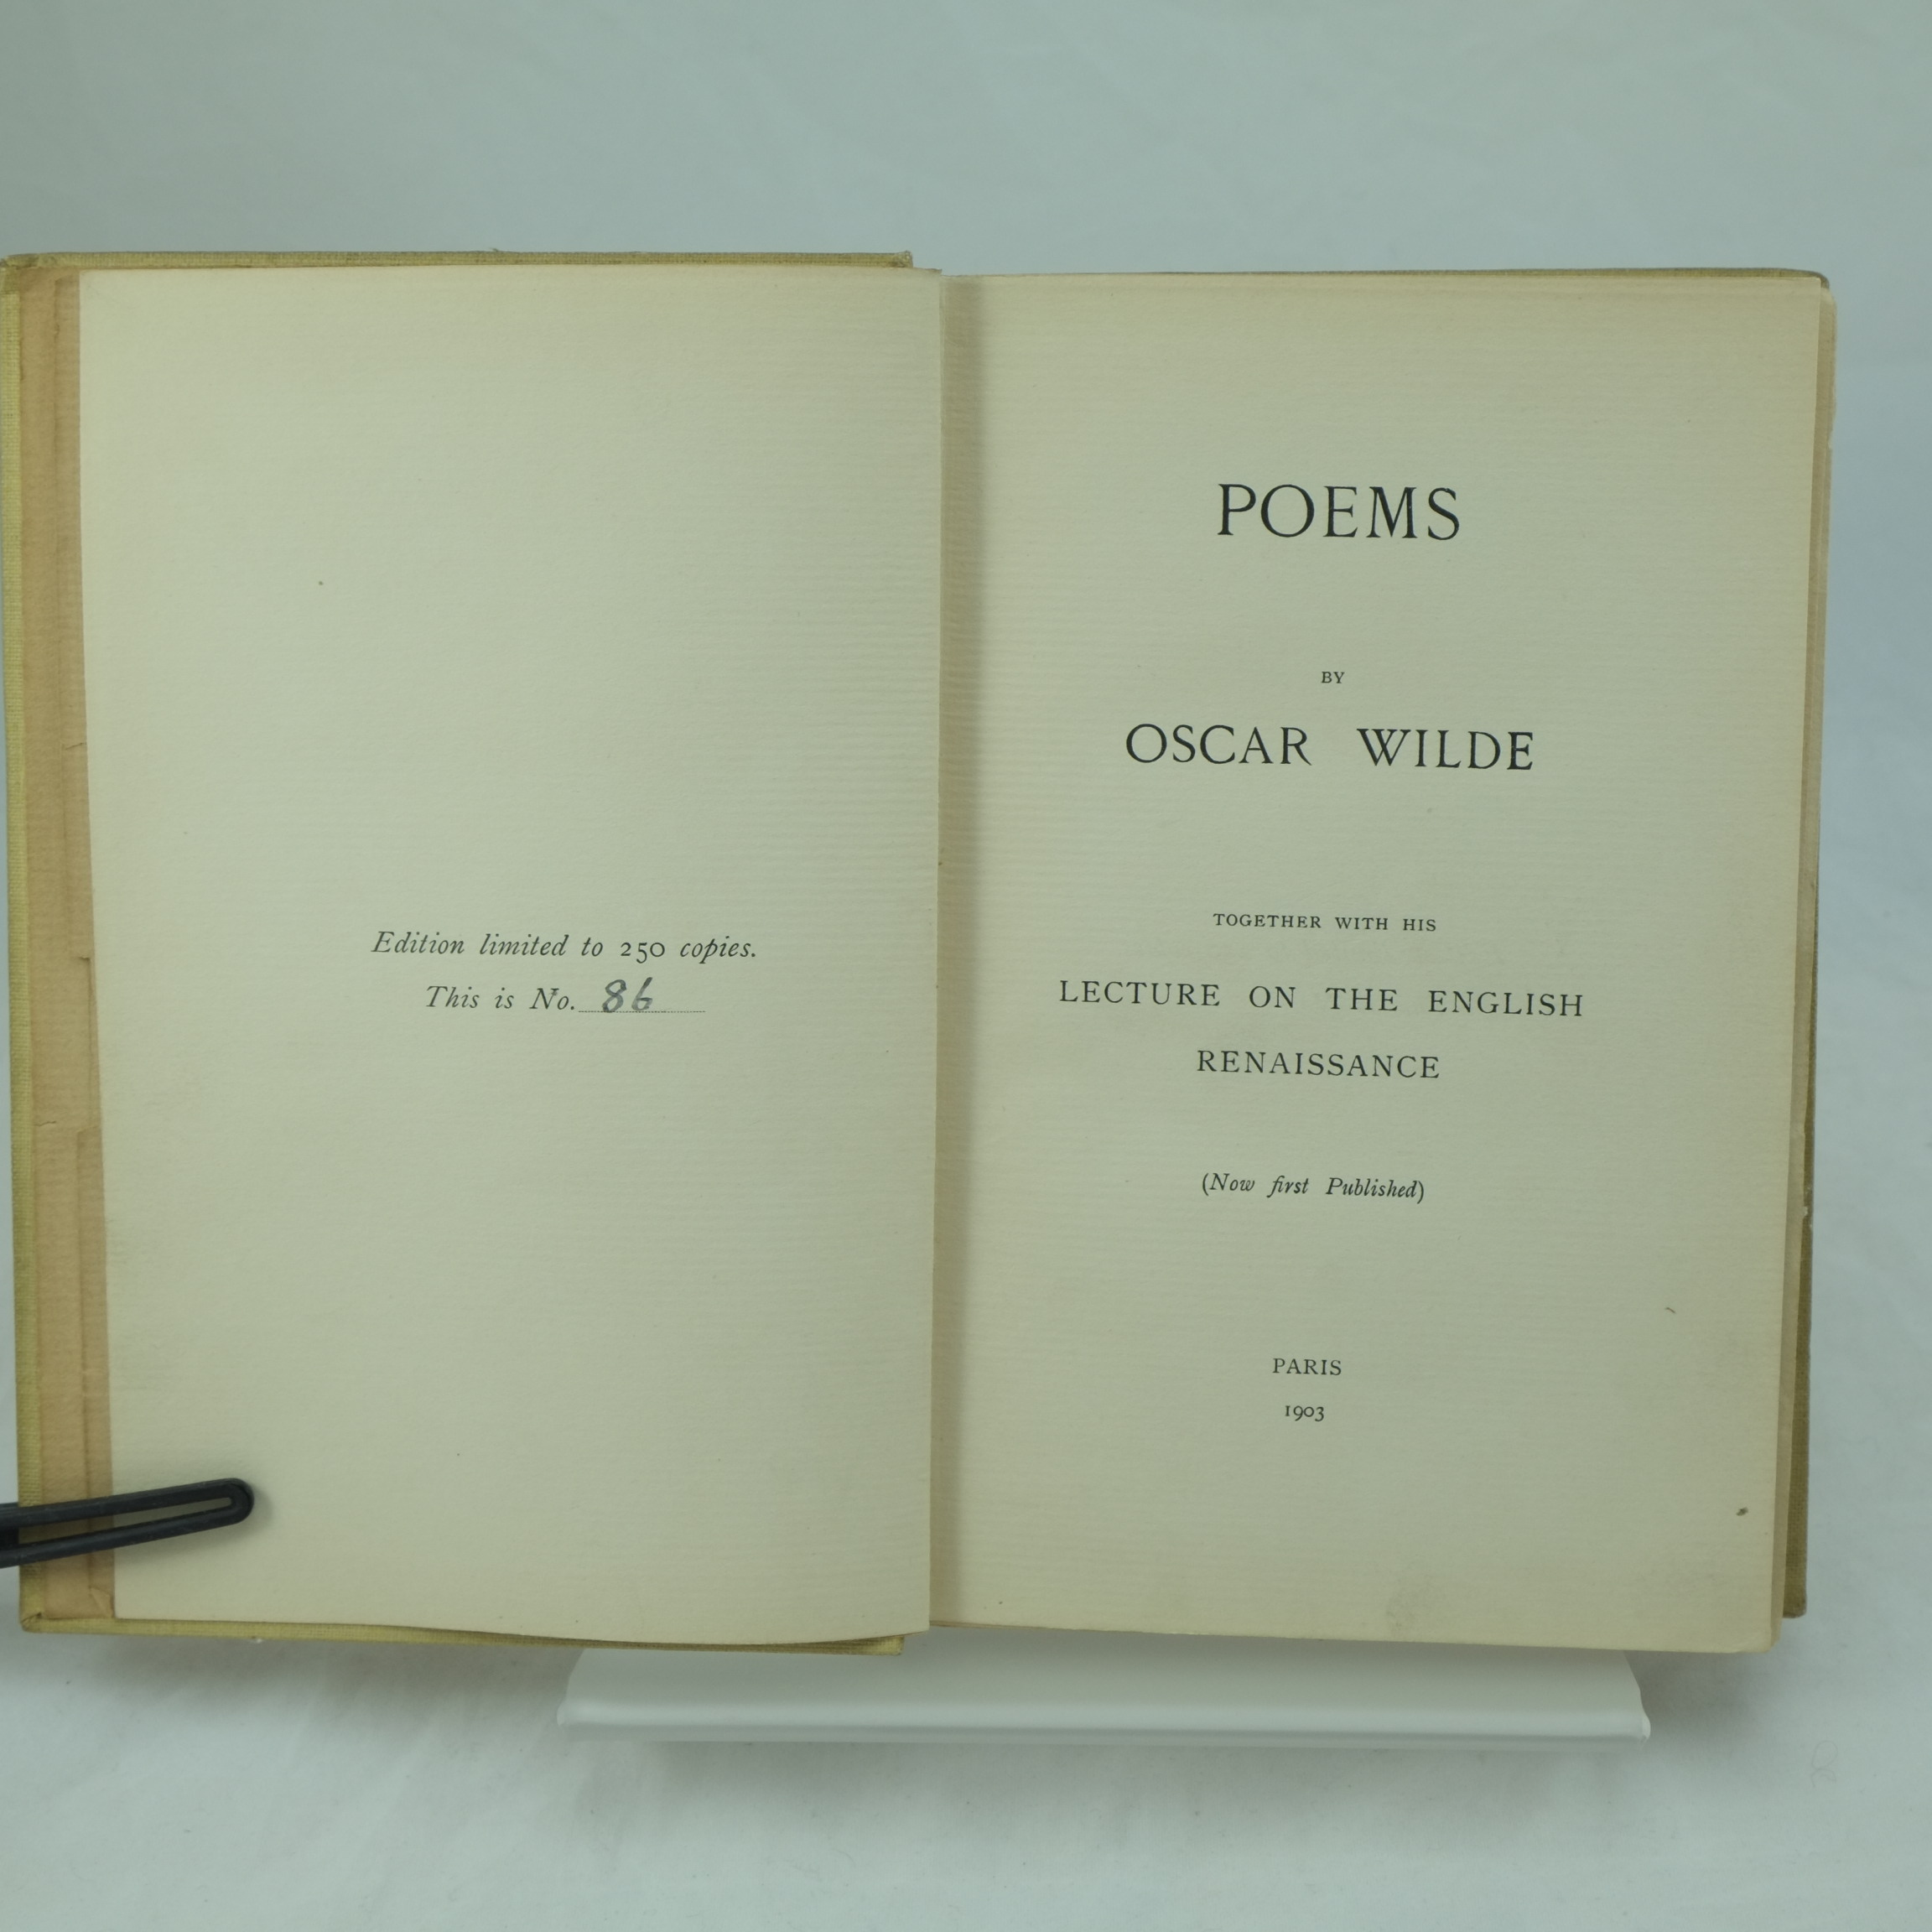 Poems By Oscar Wilde Limited Edition